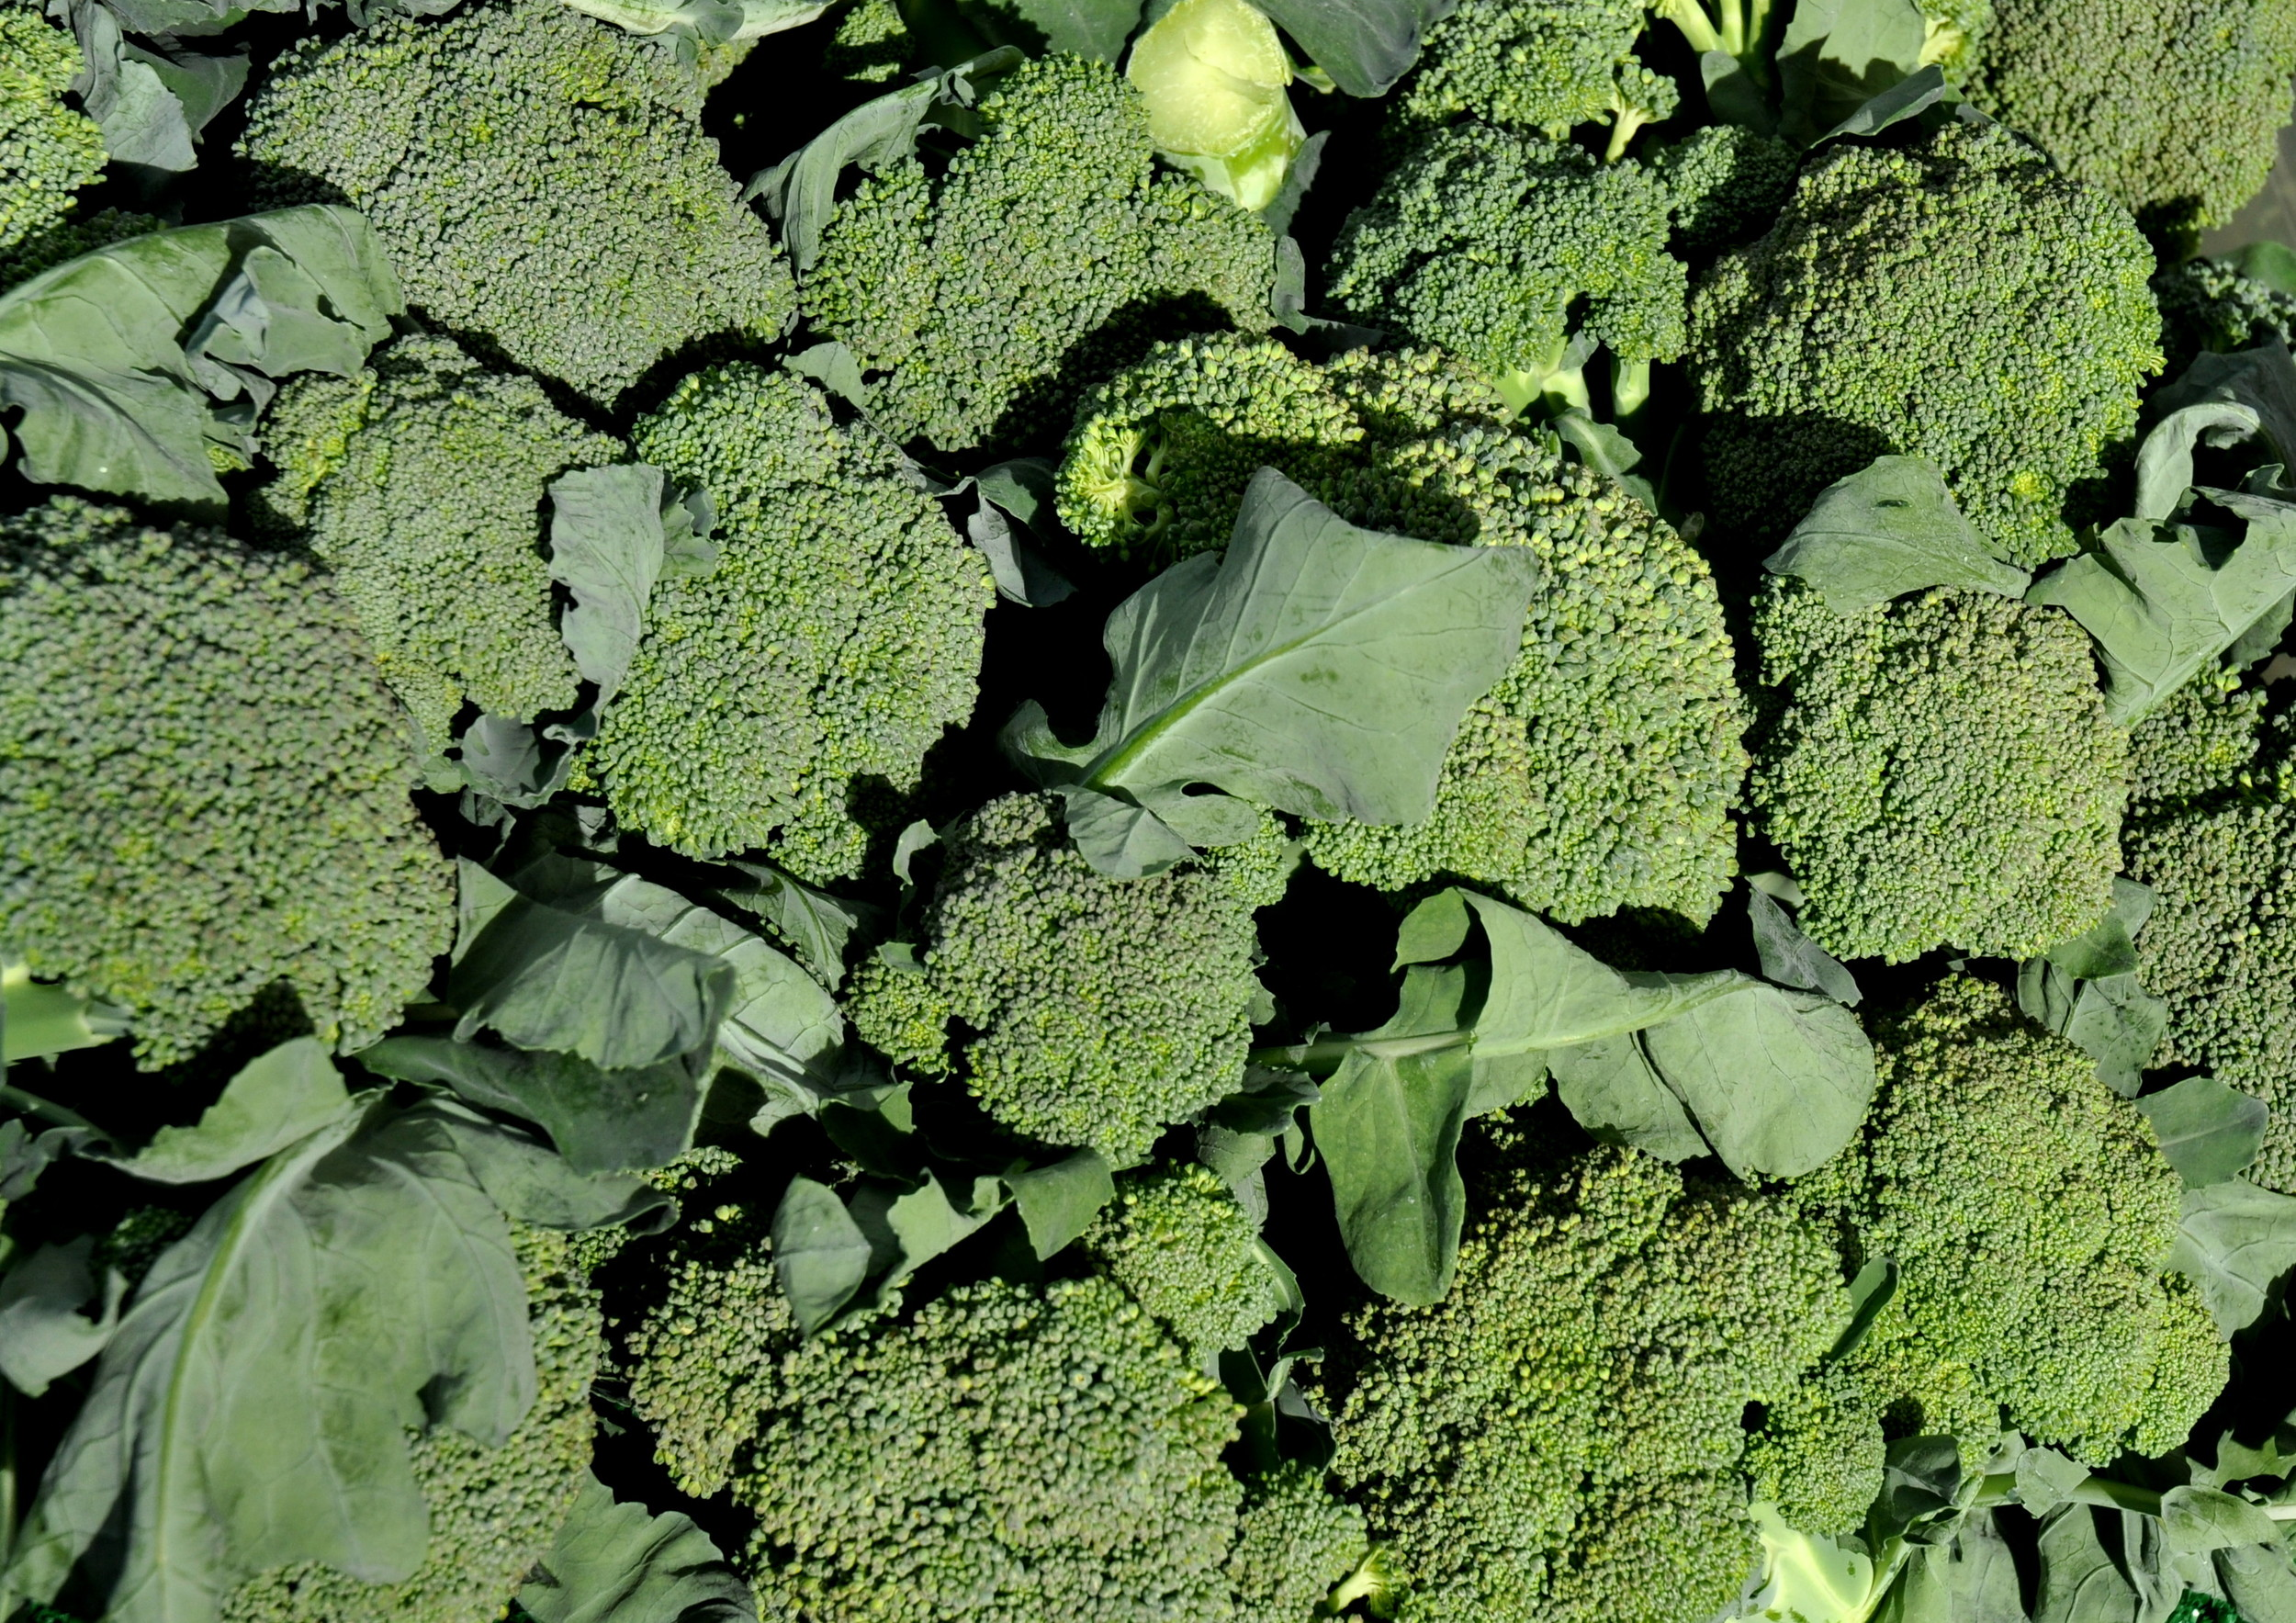 Broccoli from Alm Hill Gardens (a.k.a., Growing Washington). Photo copyright 2013 by Zachary D. Lyons.